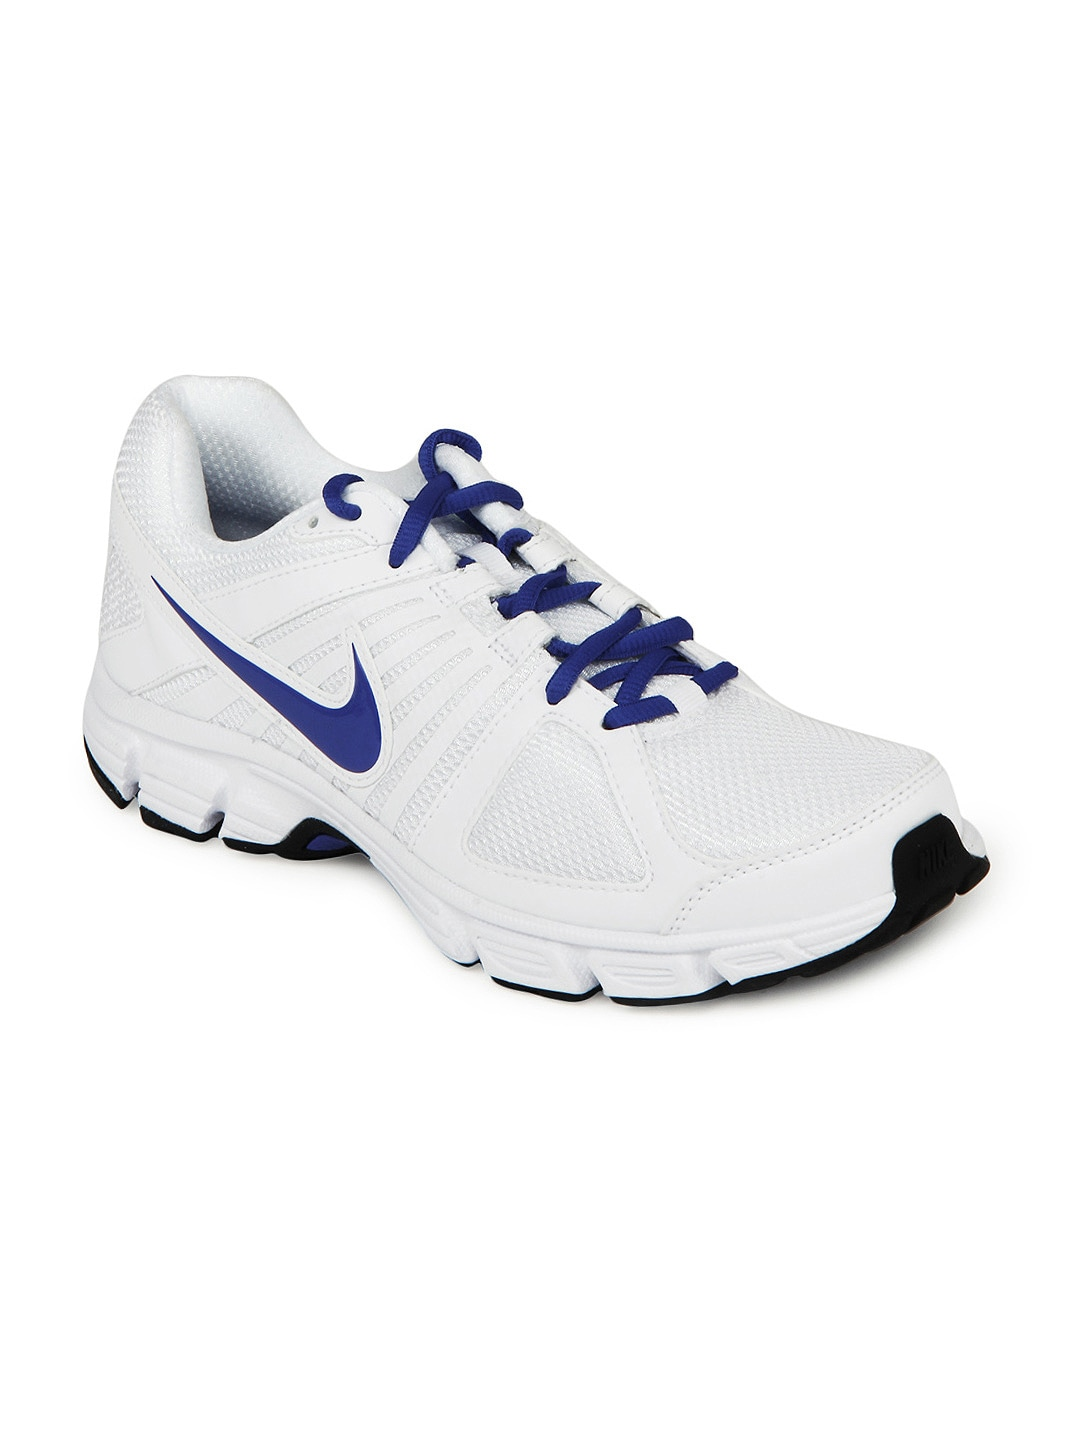 93387403584 Nike 538258-105 Men White Downshifter 5 Msl Sports Shoes- Price in India